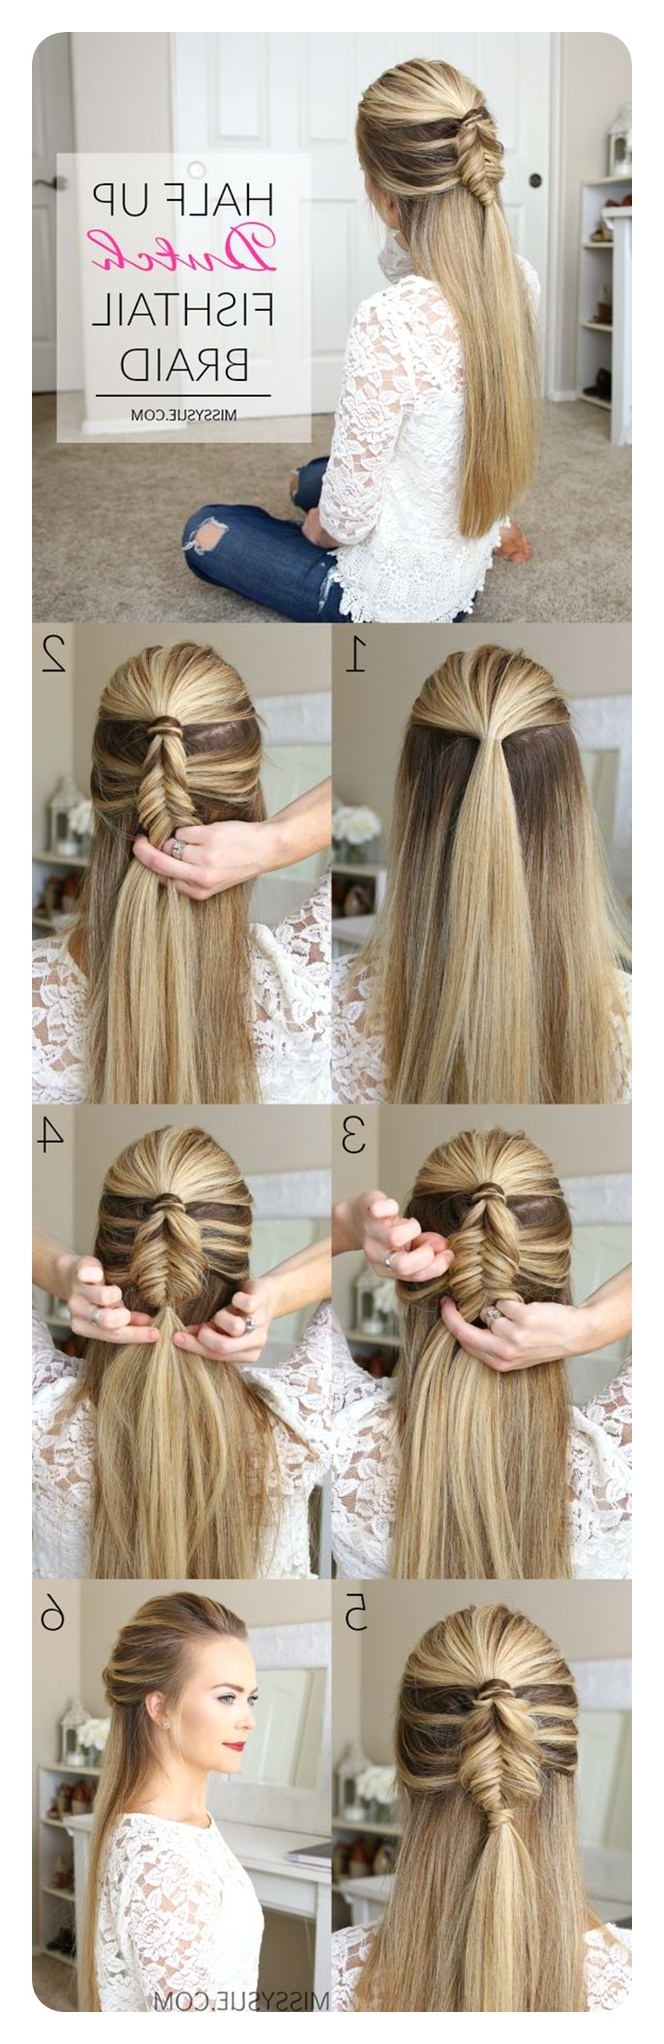 104 Easy Fishtail Braid Ideas And Their Stepstep Throughout Newest Ponytail Fishtail Braided Hairstyles (View 1 of 20)